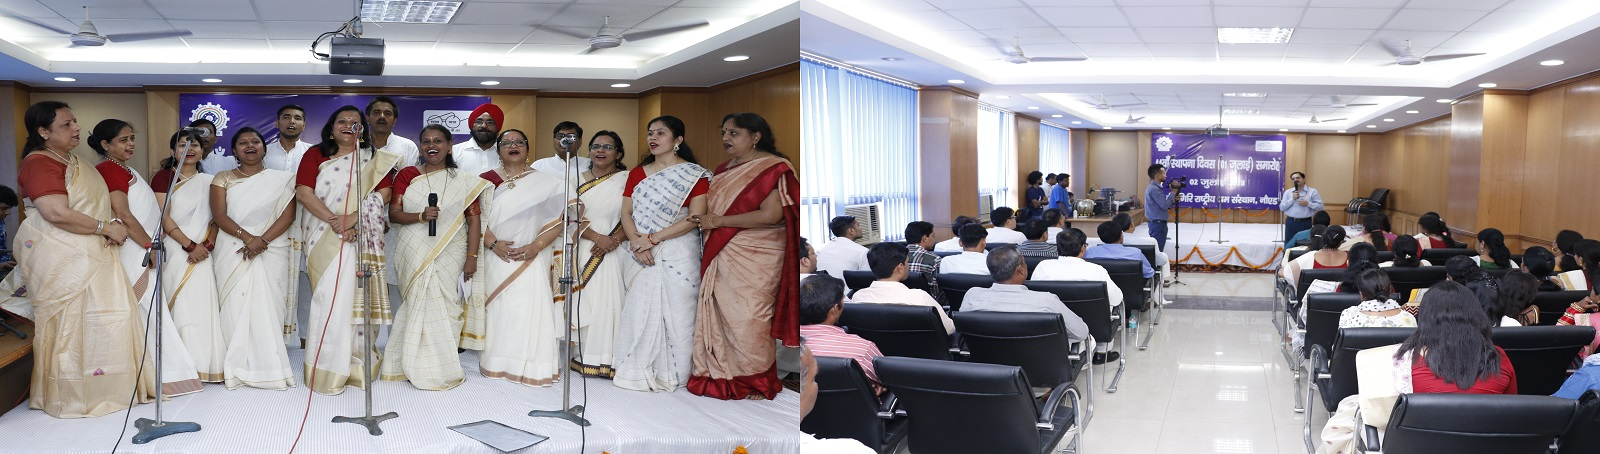 V V Giri National Labour Institute celebrated its 44th foundation day on 2nd July 2018. Dr H Srinivas, Director General addressed the officials and staff on this occasion and also various cultural programmes were organised at the institute.